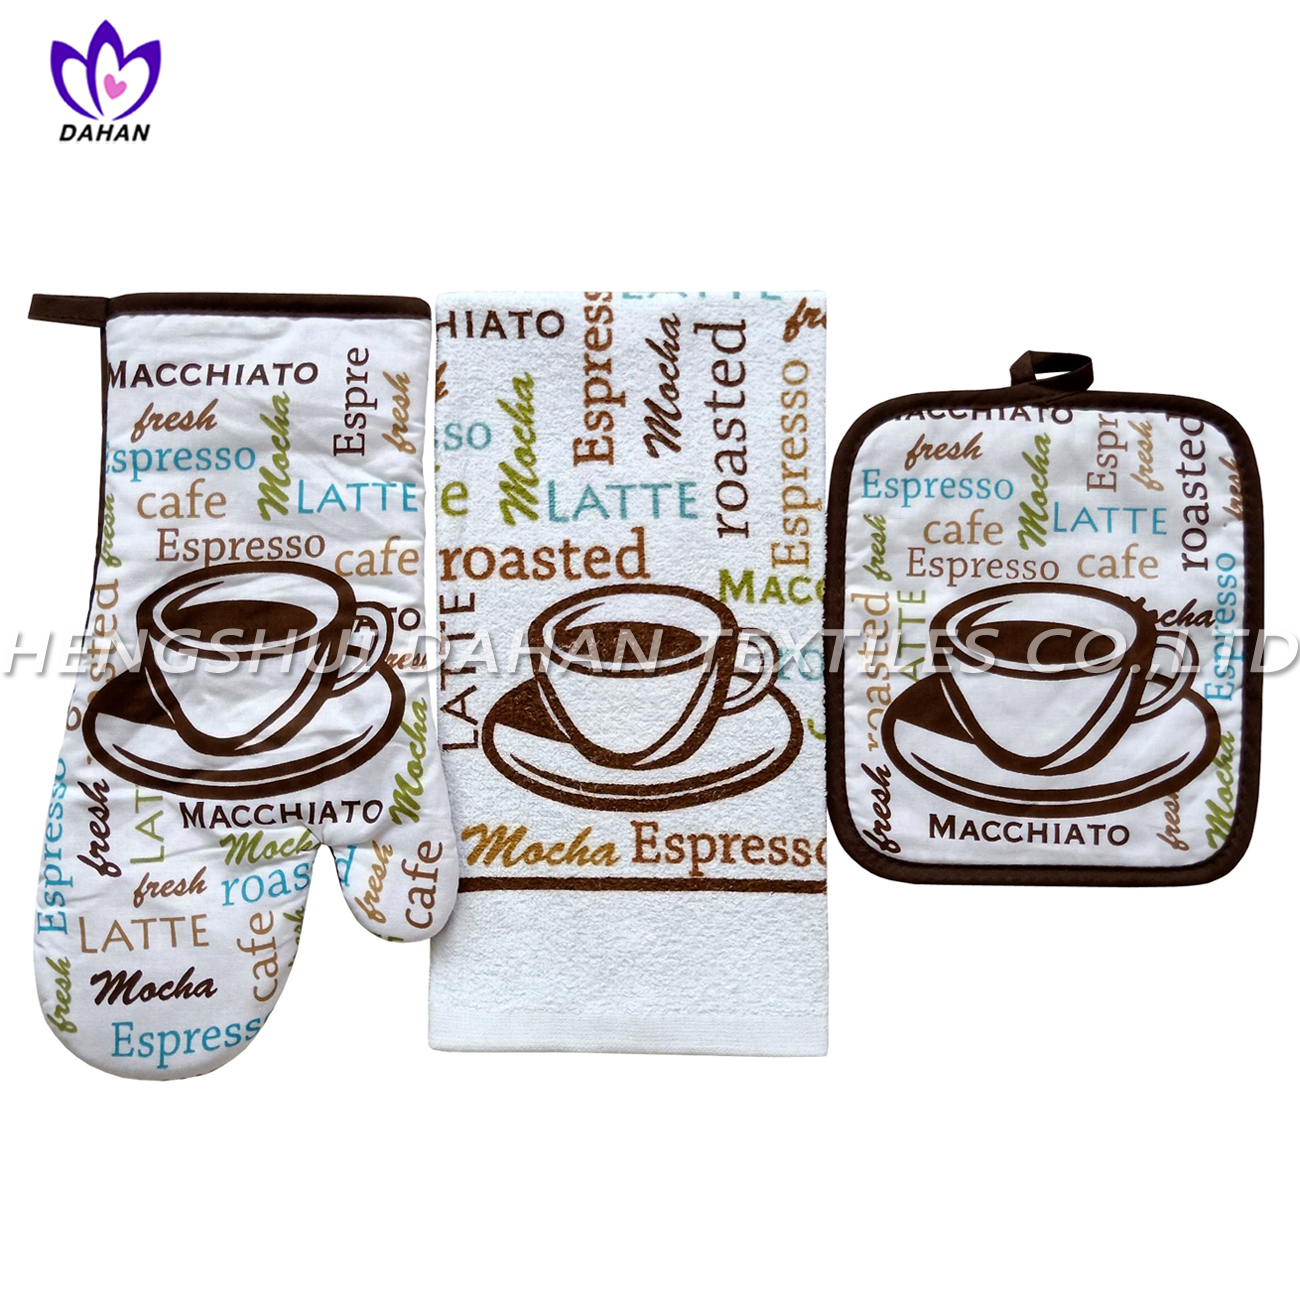 343VW printing glove,pot pad,cotton towel 3pack